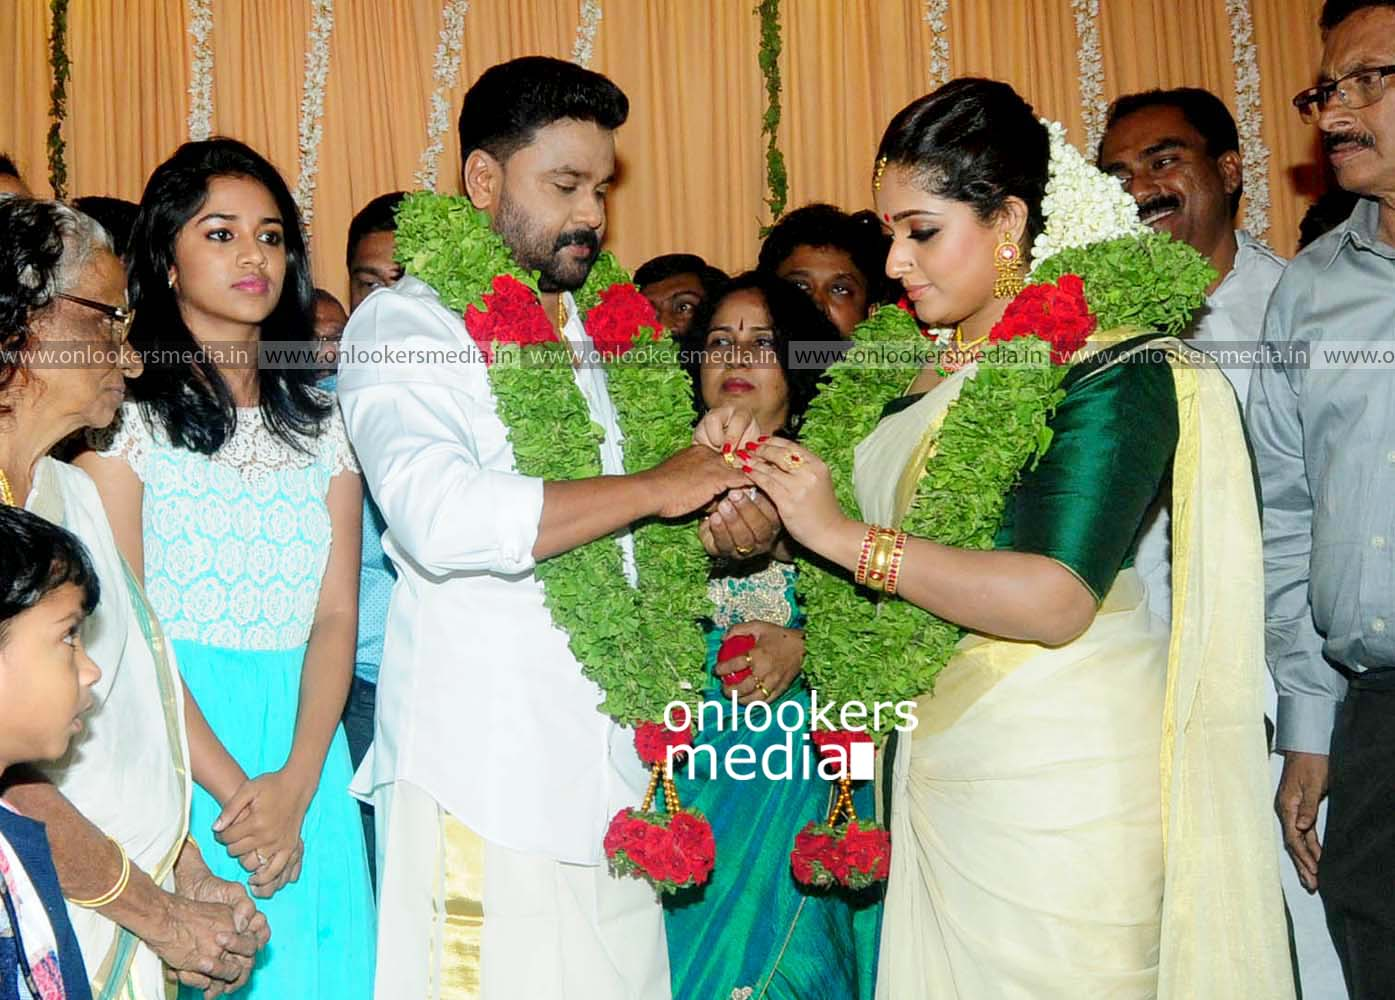 http://onlookersmedia.in/wp-content/uploads/2016/11/Dileep-Kavya-Madhavan-Wedding-Stills-Photos-21.jpg